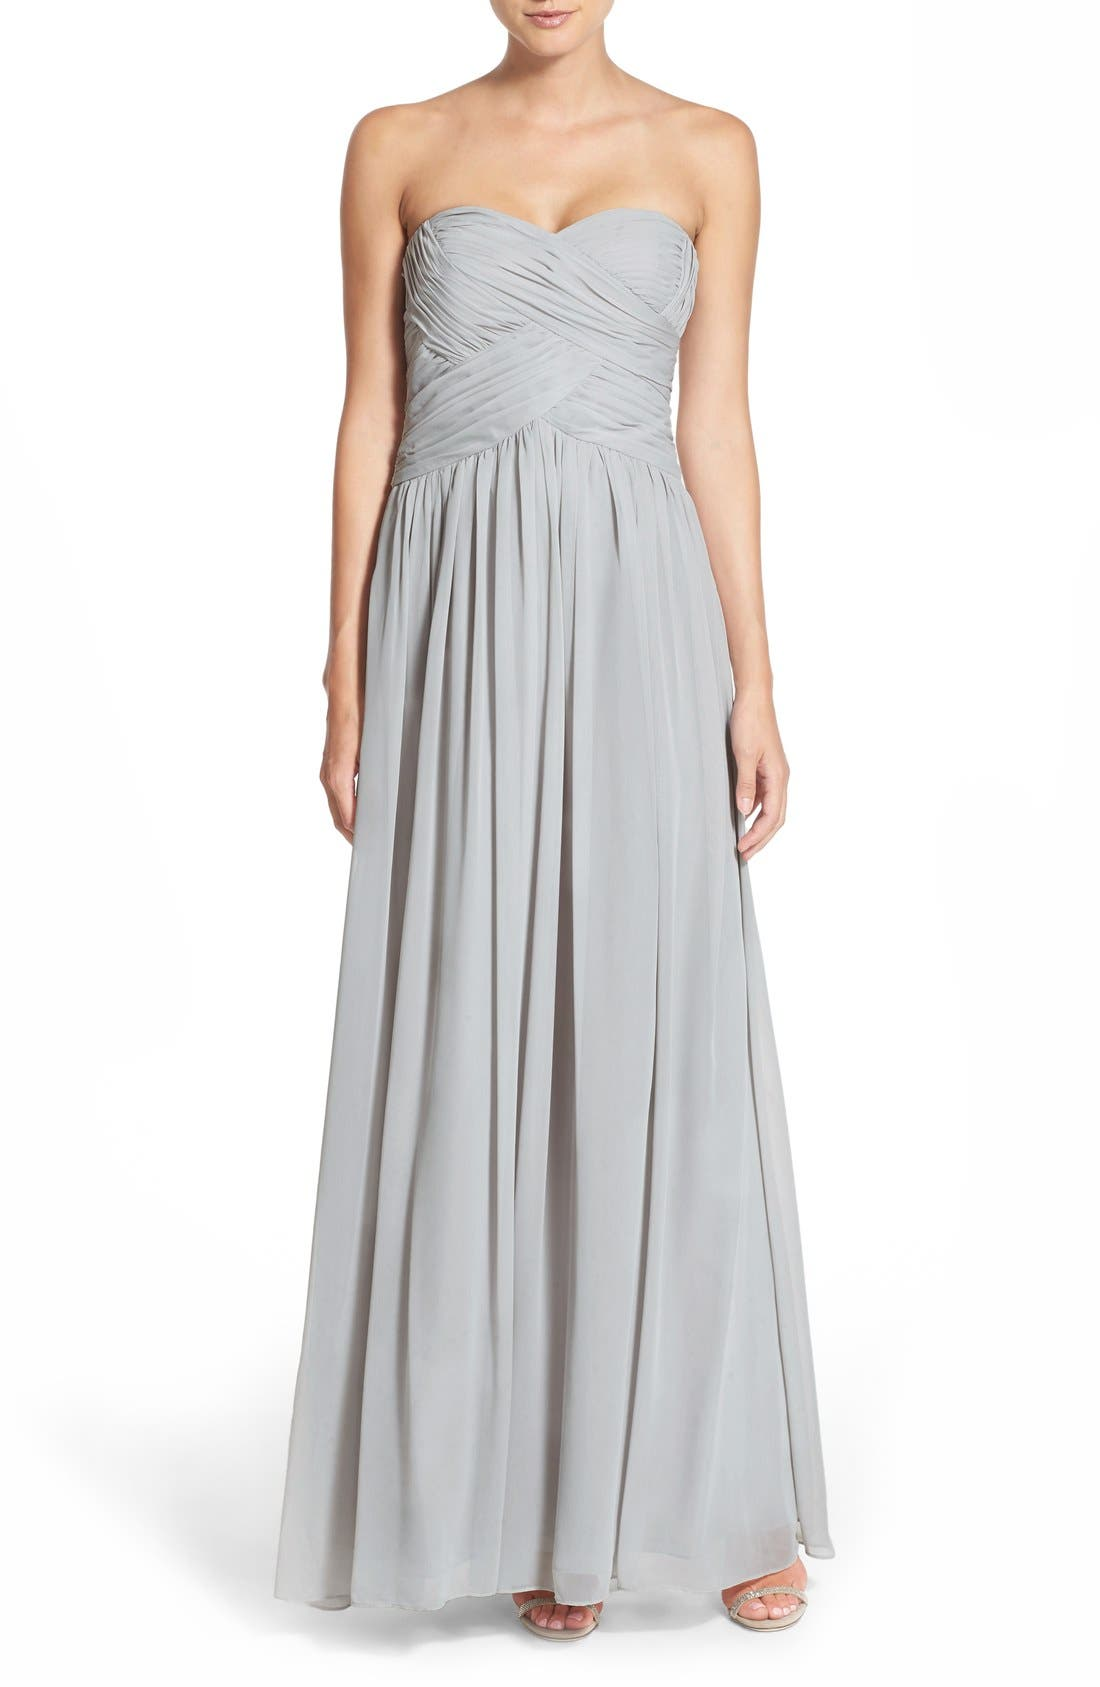 Strapless Ruched Chiffon Gown,                             Main thumbnail 1, color,                             021